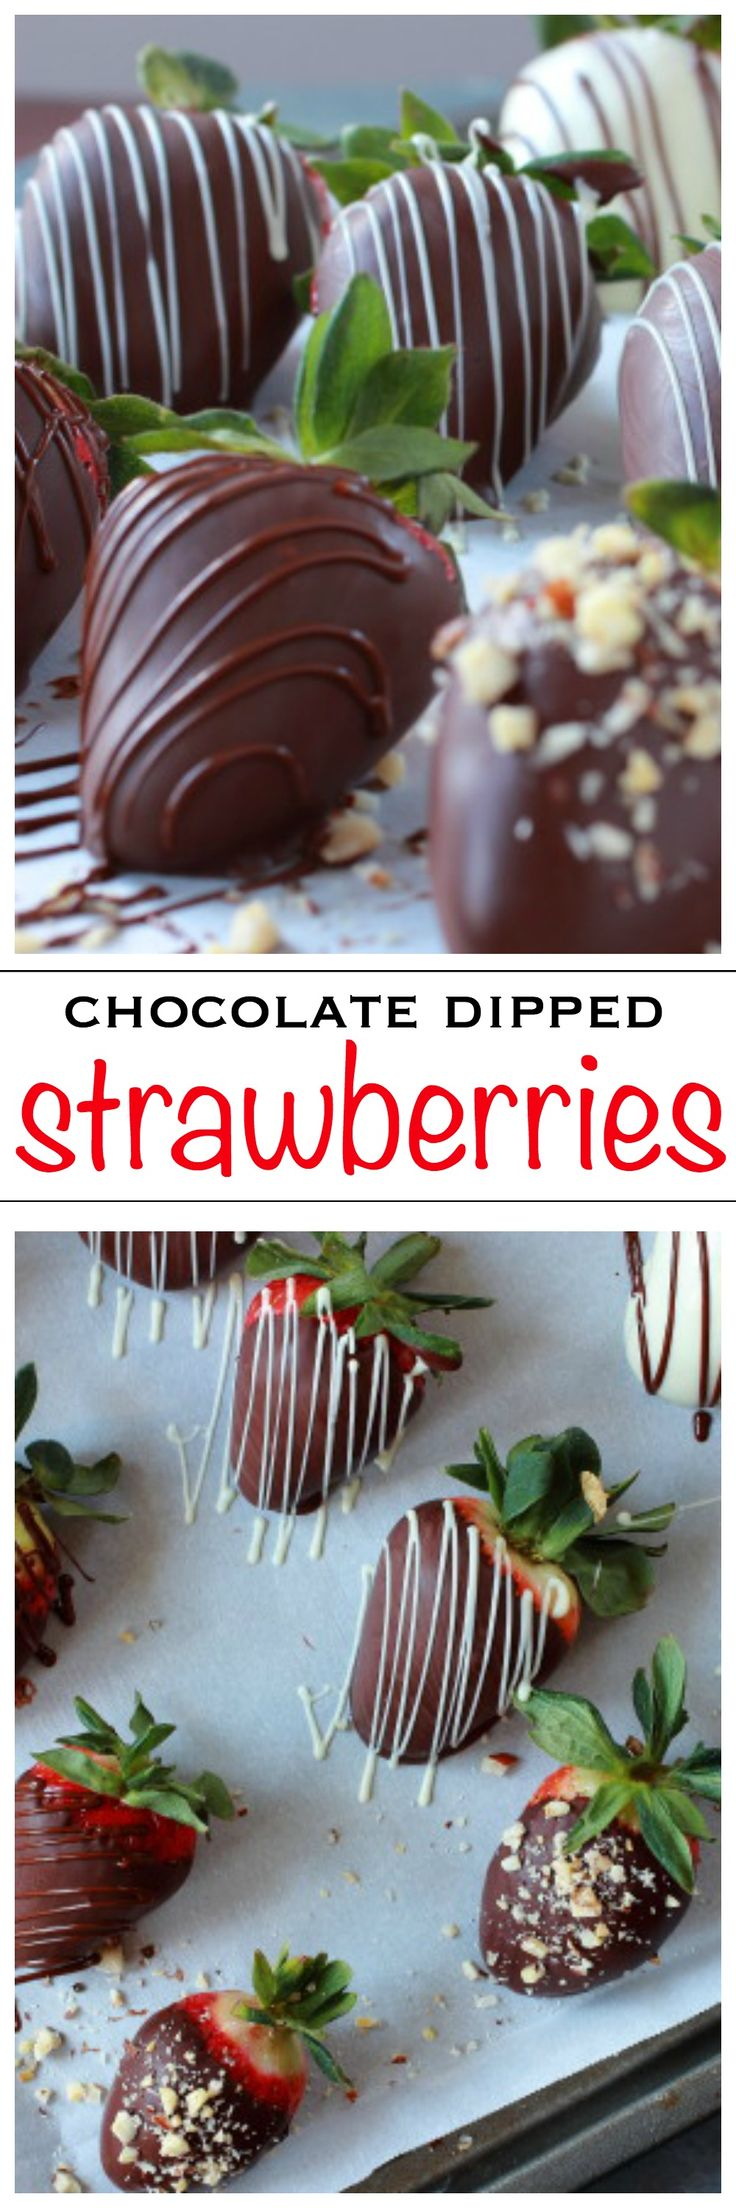 Chocolate Dipped Strawberries. Perfect for your sweetheart on Valentine's Day | Foodness Gracious